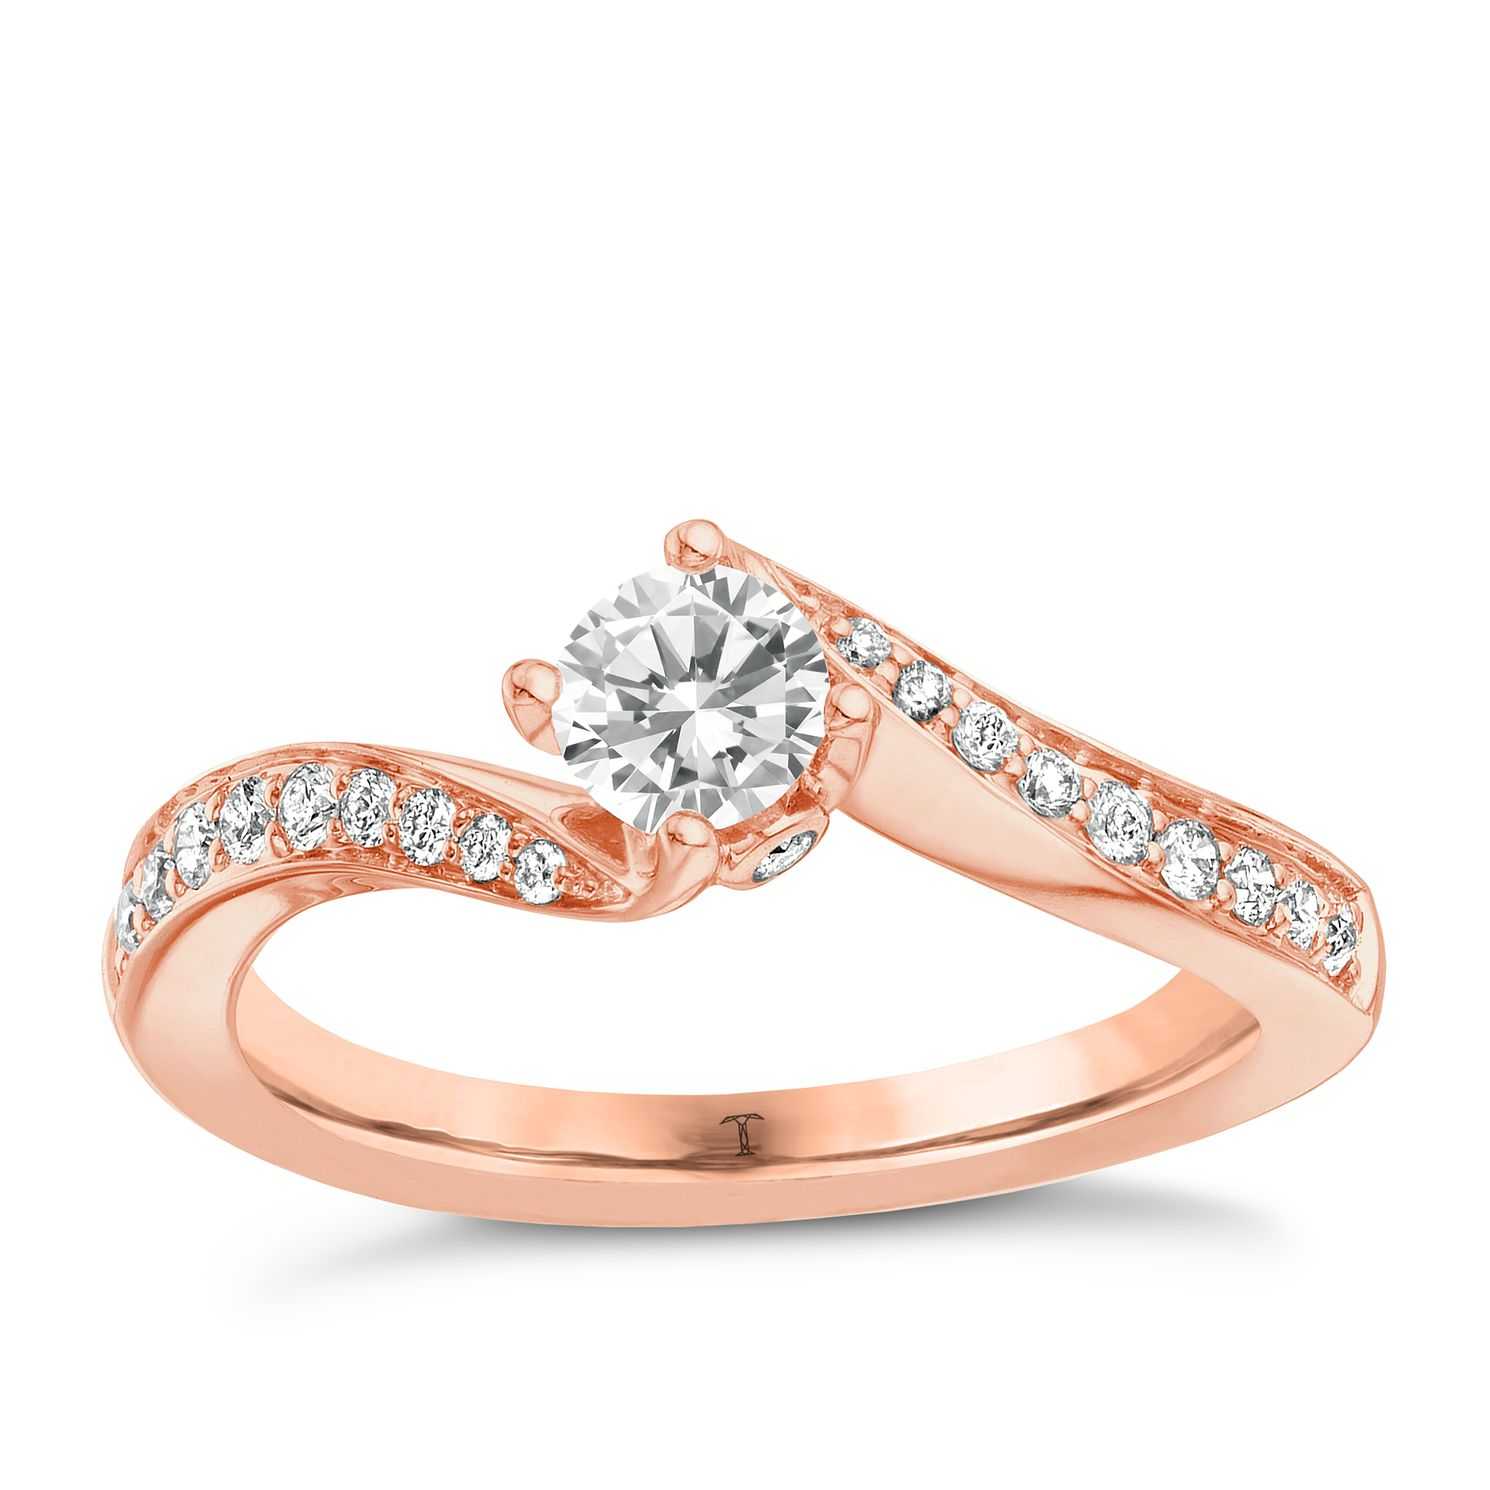 Tolkowsky 18ct Rose Gold 1/3ct Diamond Ring - Product number 8411549